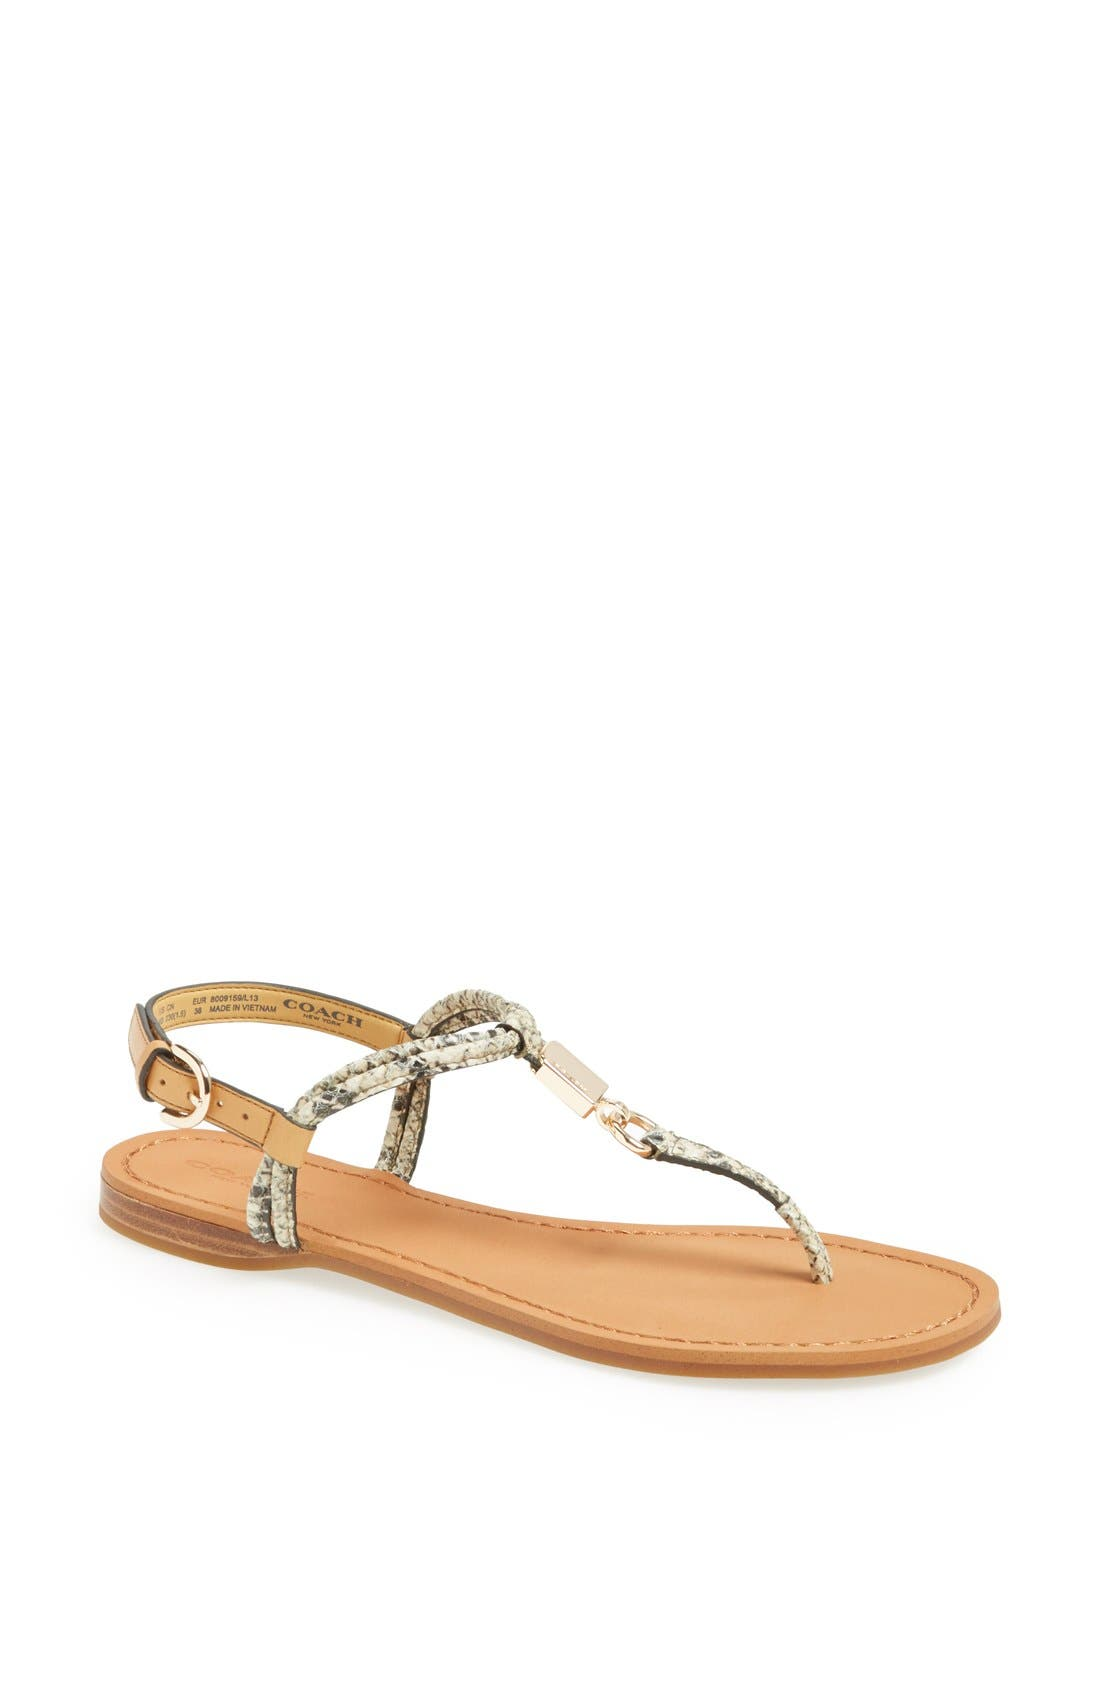 Alternate Image 1 Selected - COACH 'Charleen' Leather Thong Sandal